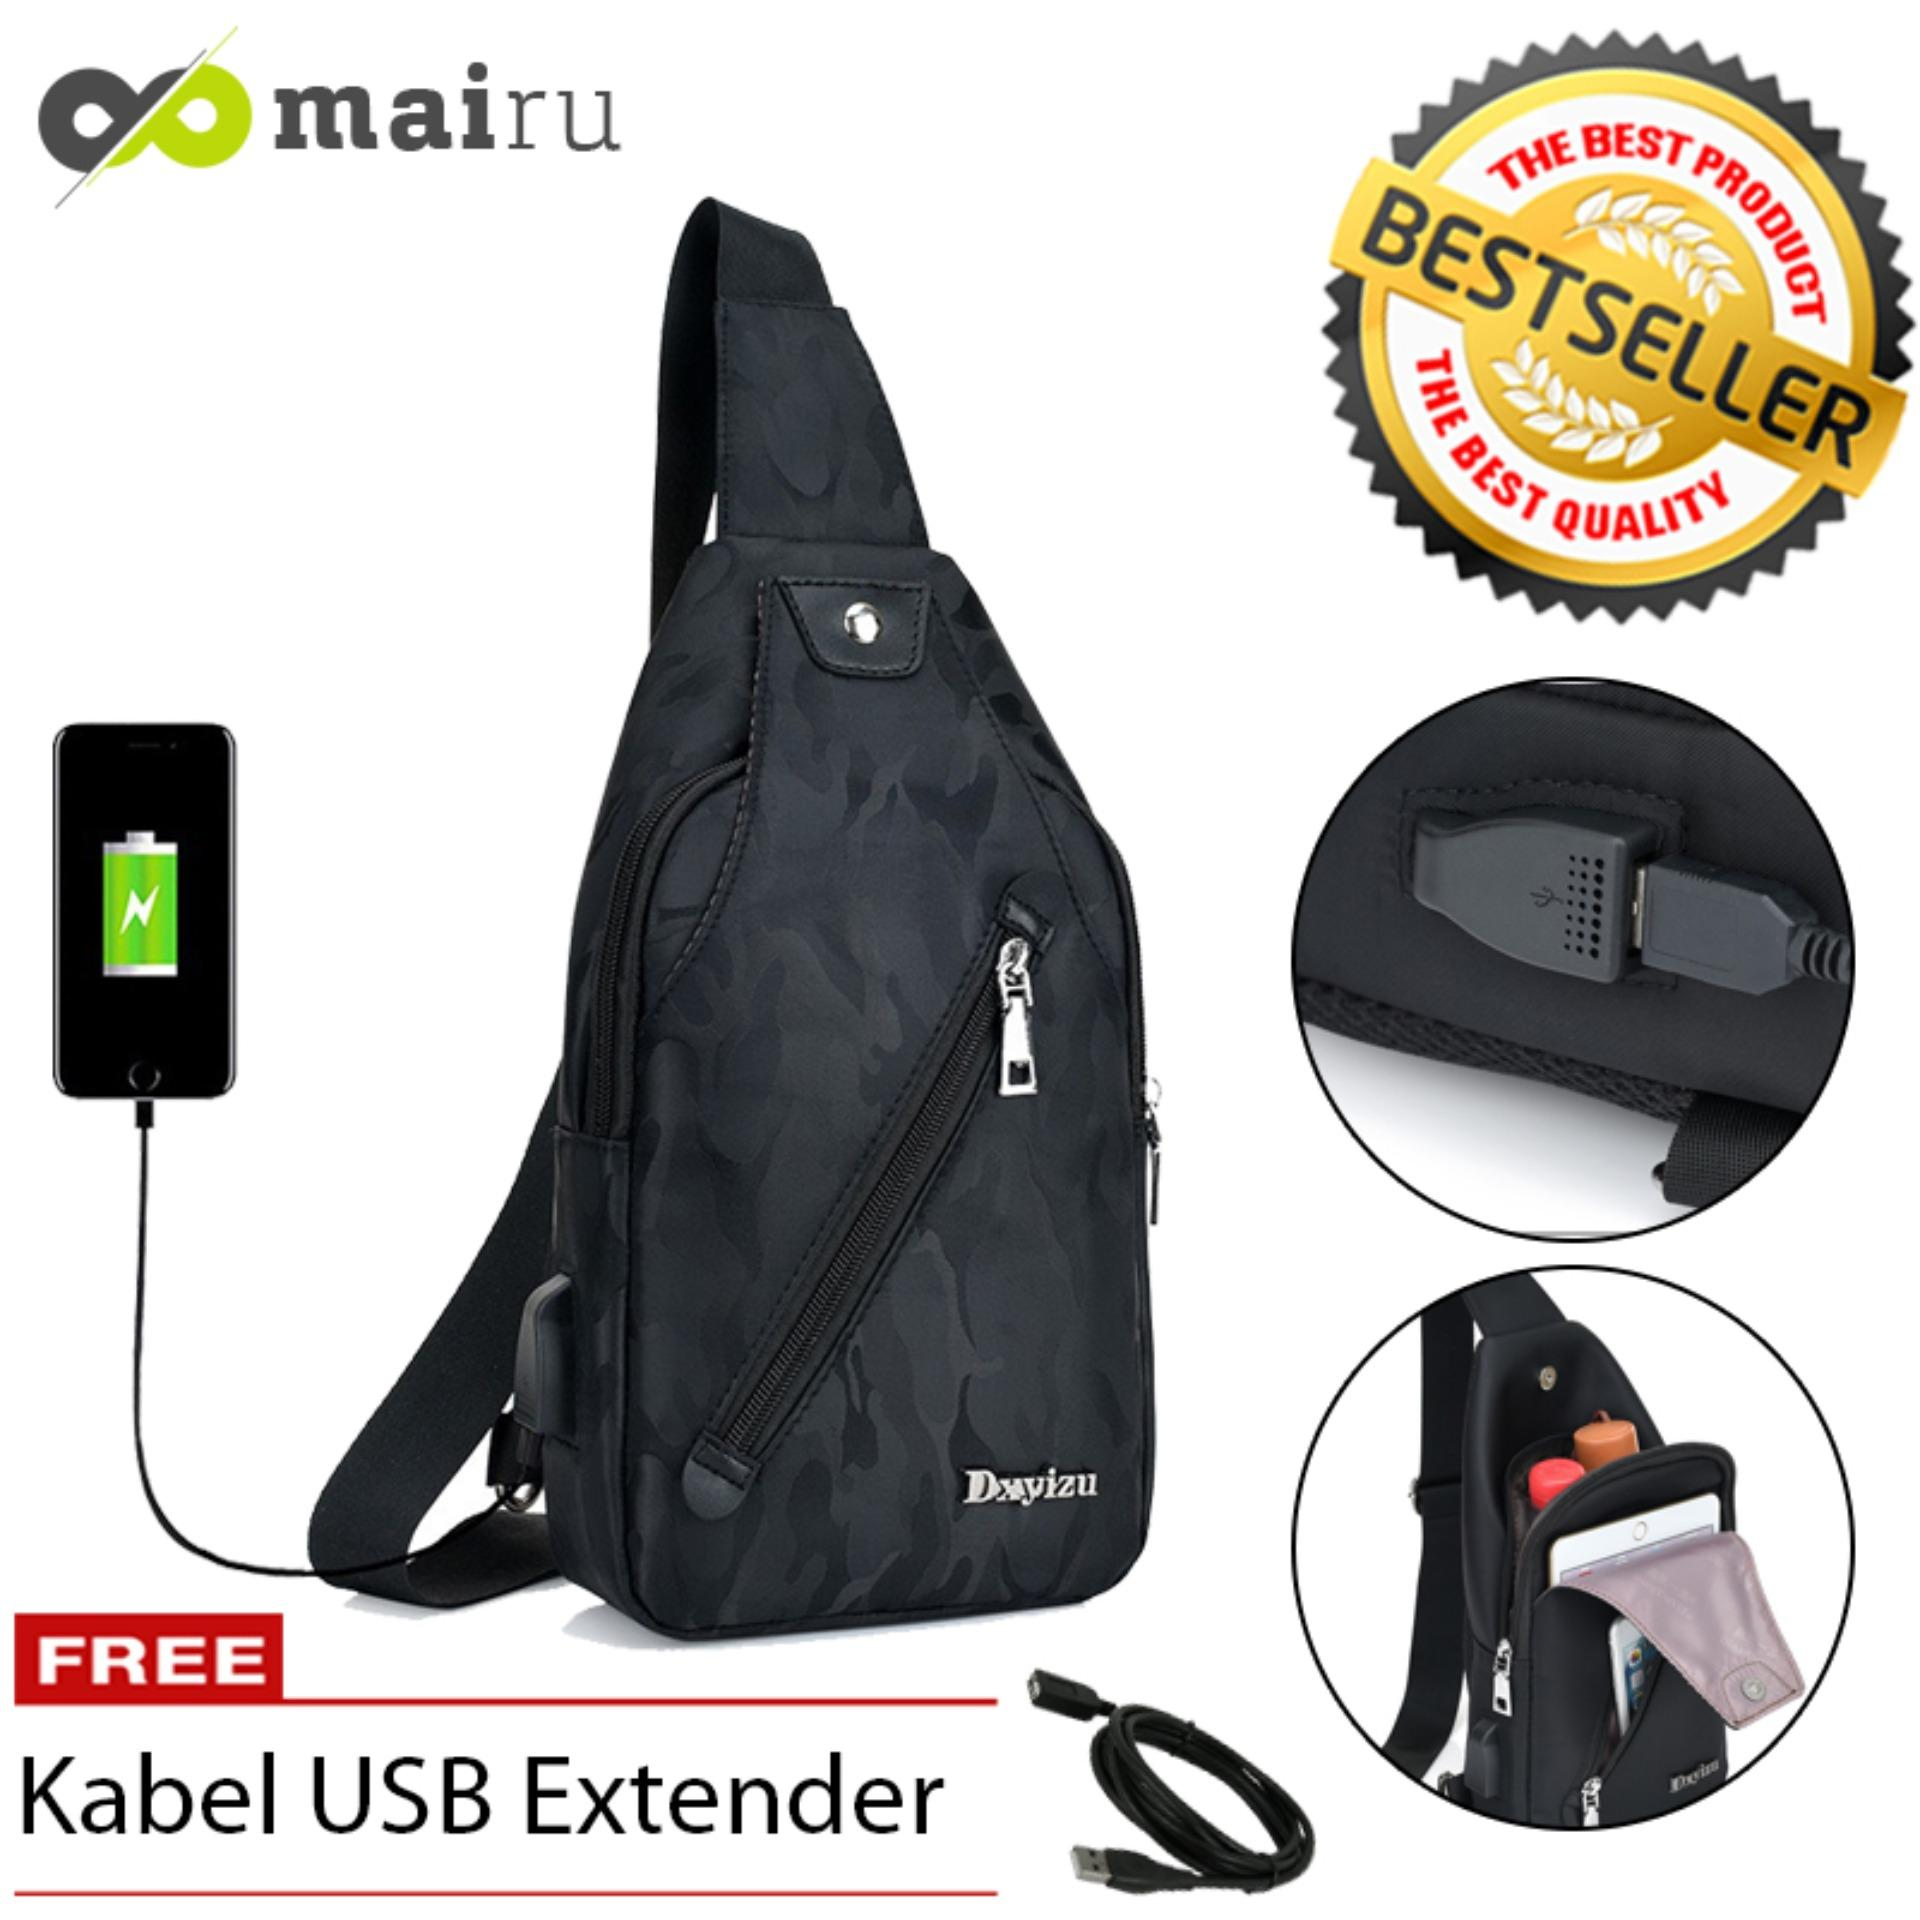 Harga Mairu Dxyizu 533 Tas Selempang Pria Sling Bag Cross Body With Usb Charger Support For Iphone Ipad Mini Xiaomi Samsung Tab Tablet 8 Anti Theft Original